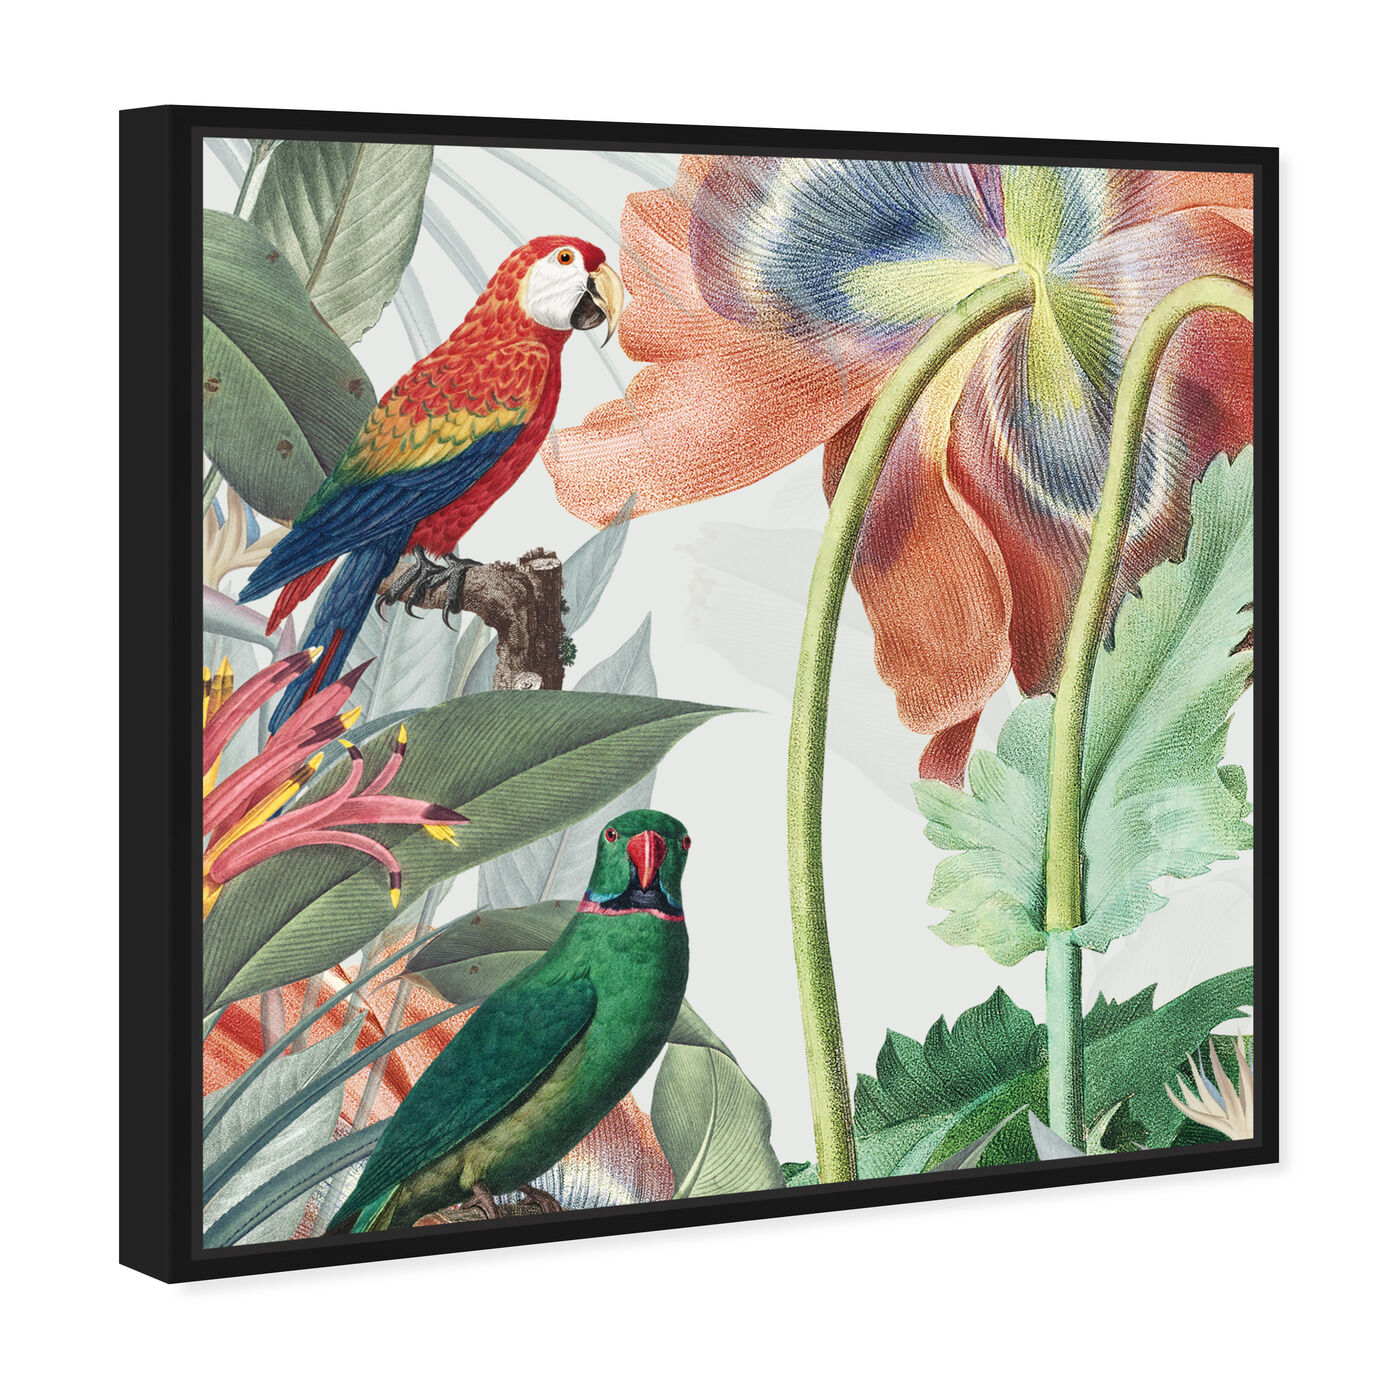 Angled view of Natura 2 featuring animals and birds art.